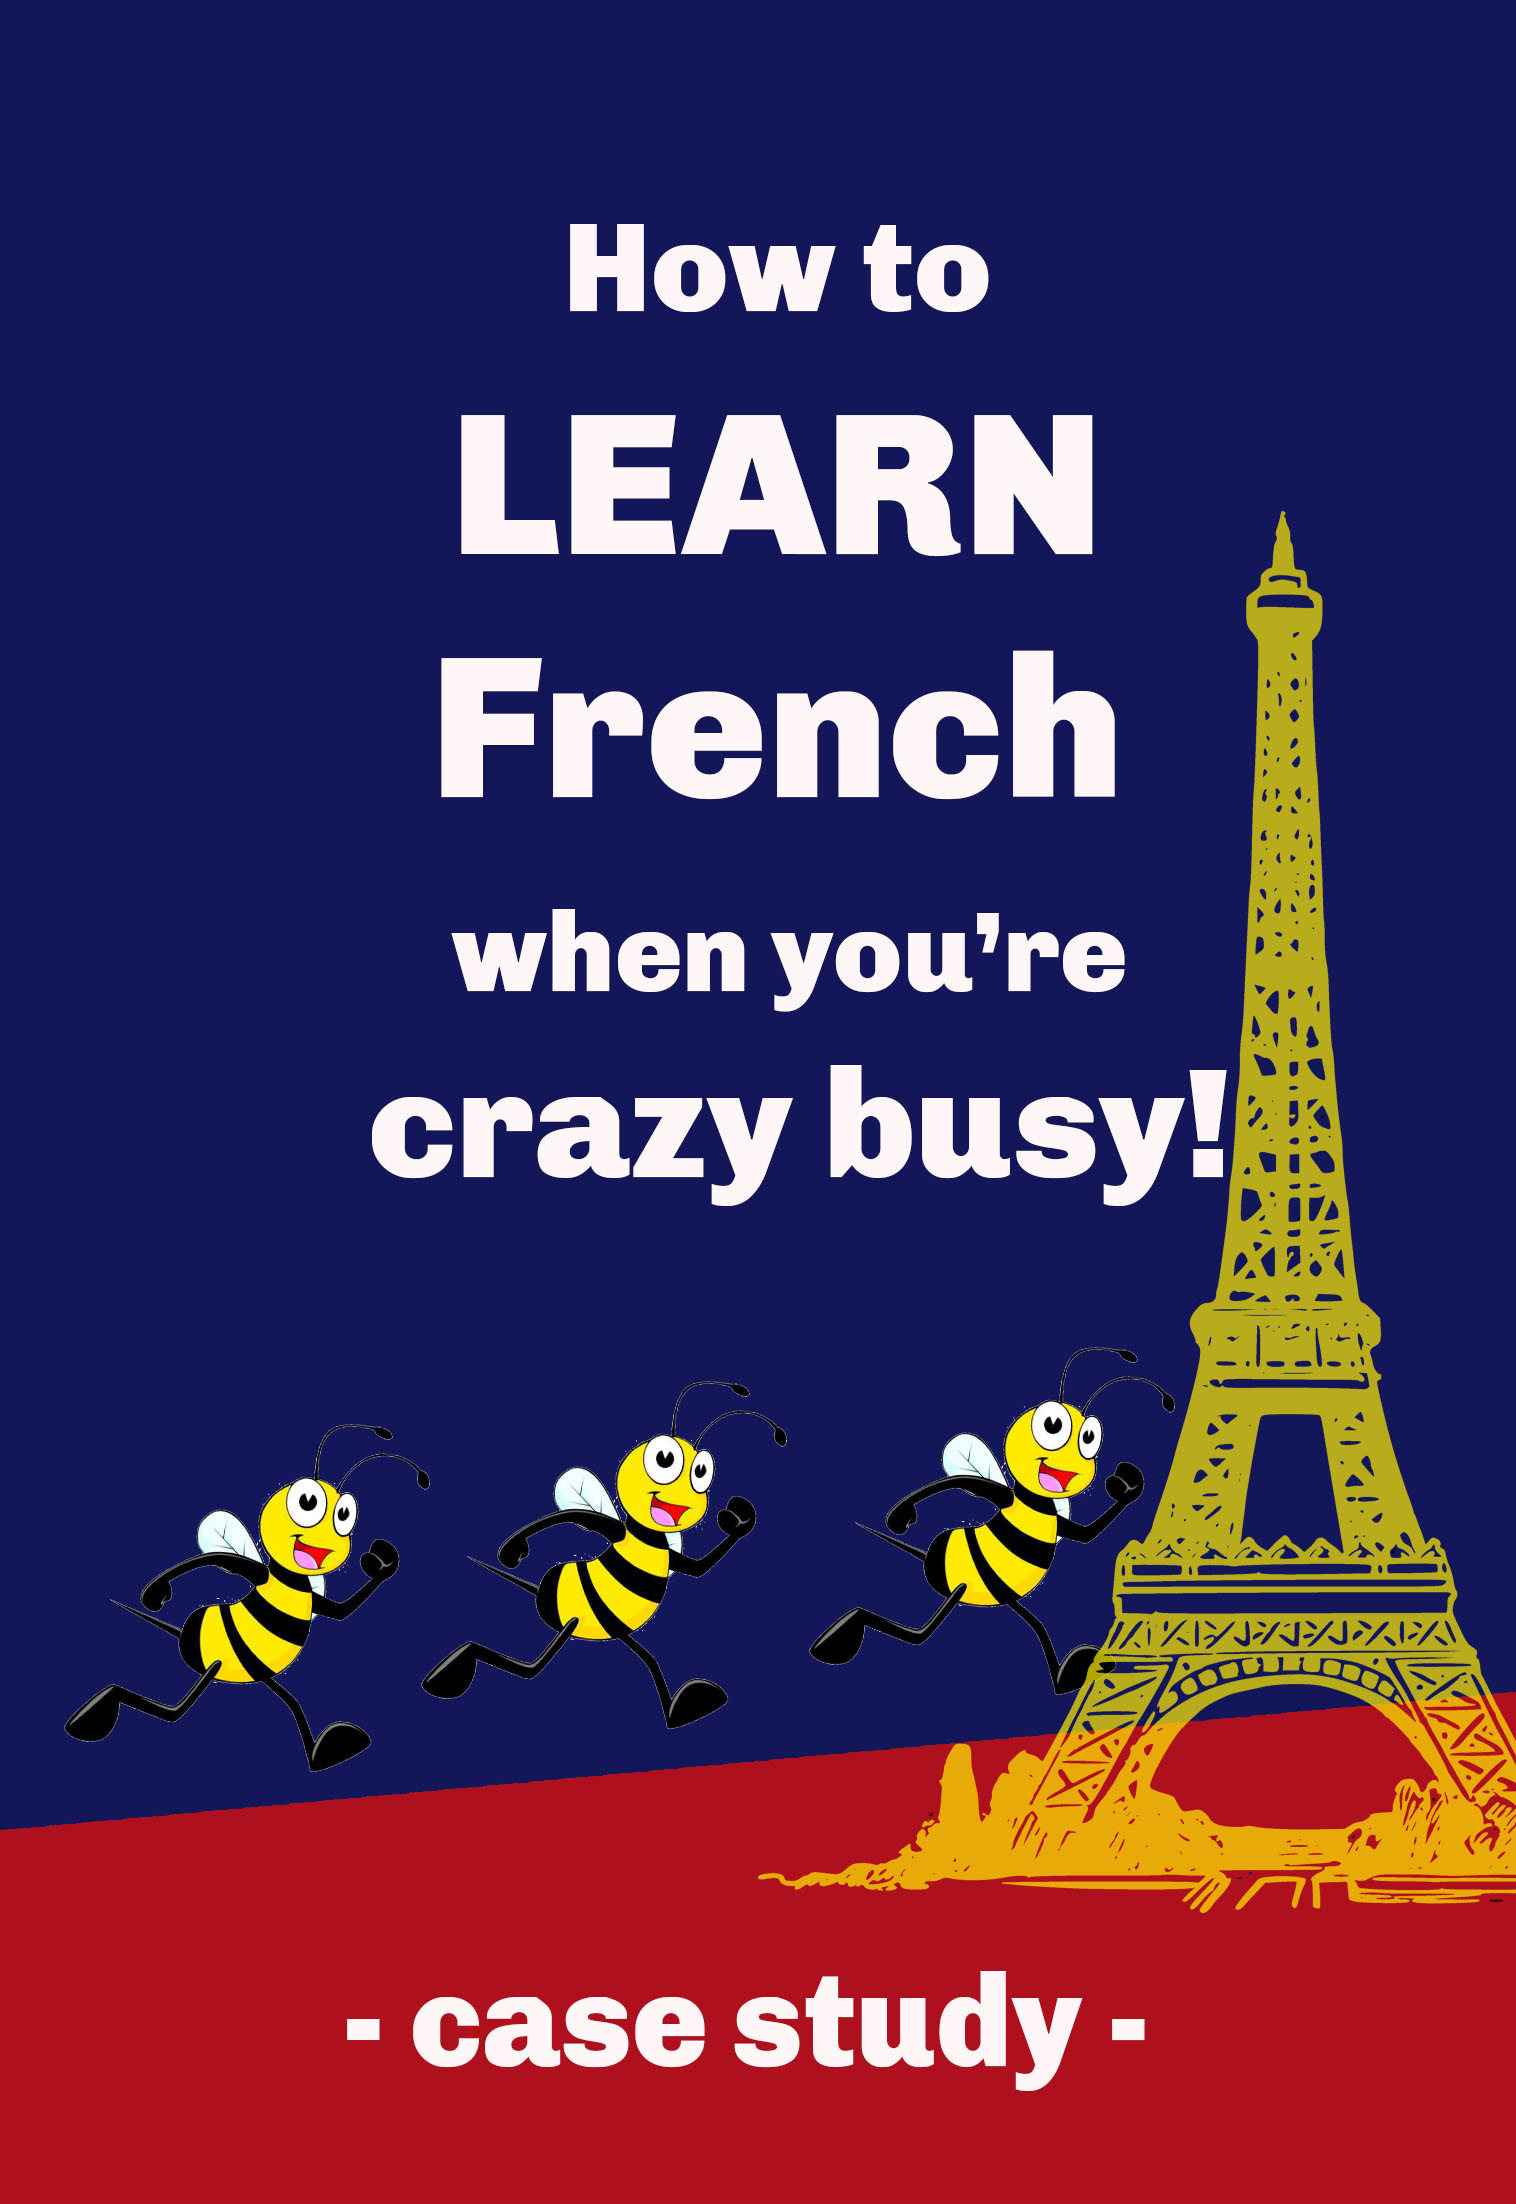 How to learn French fast when you're crazy busy.